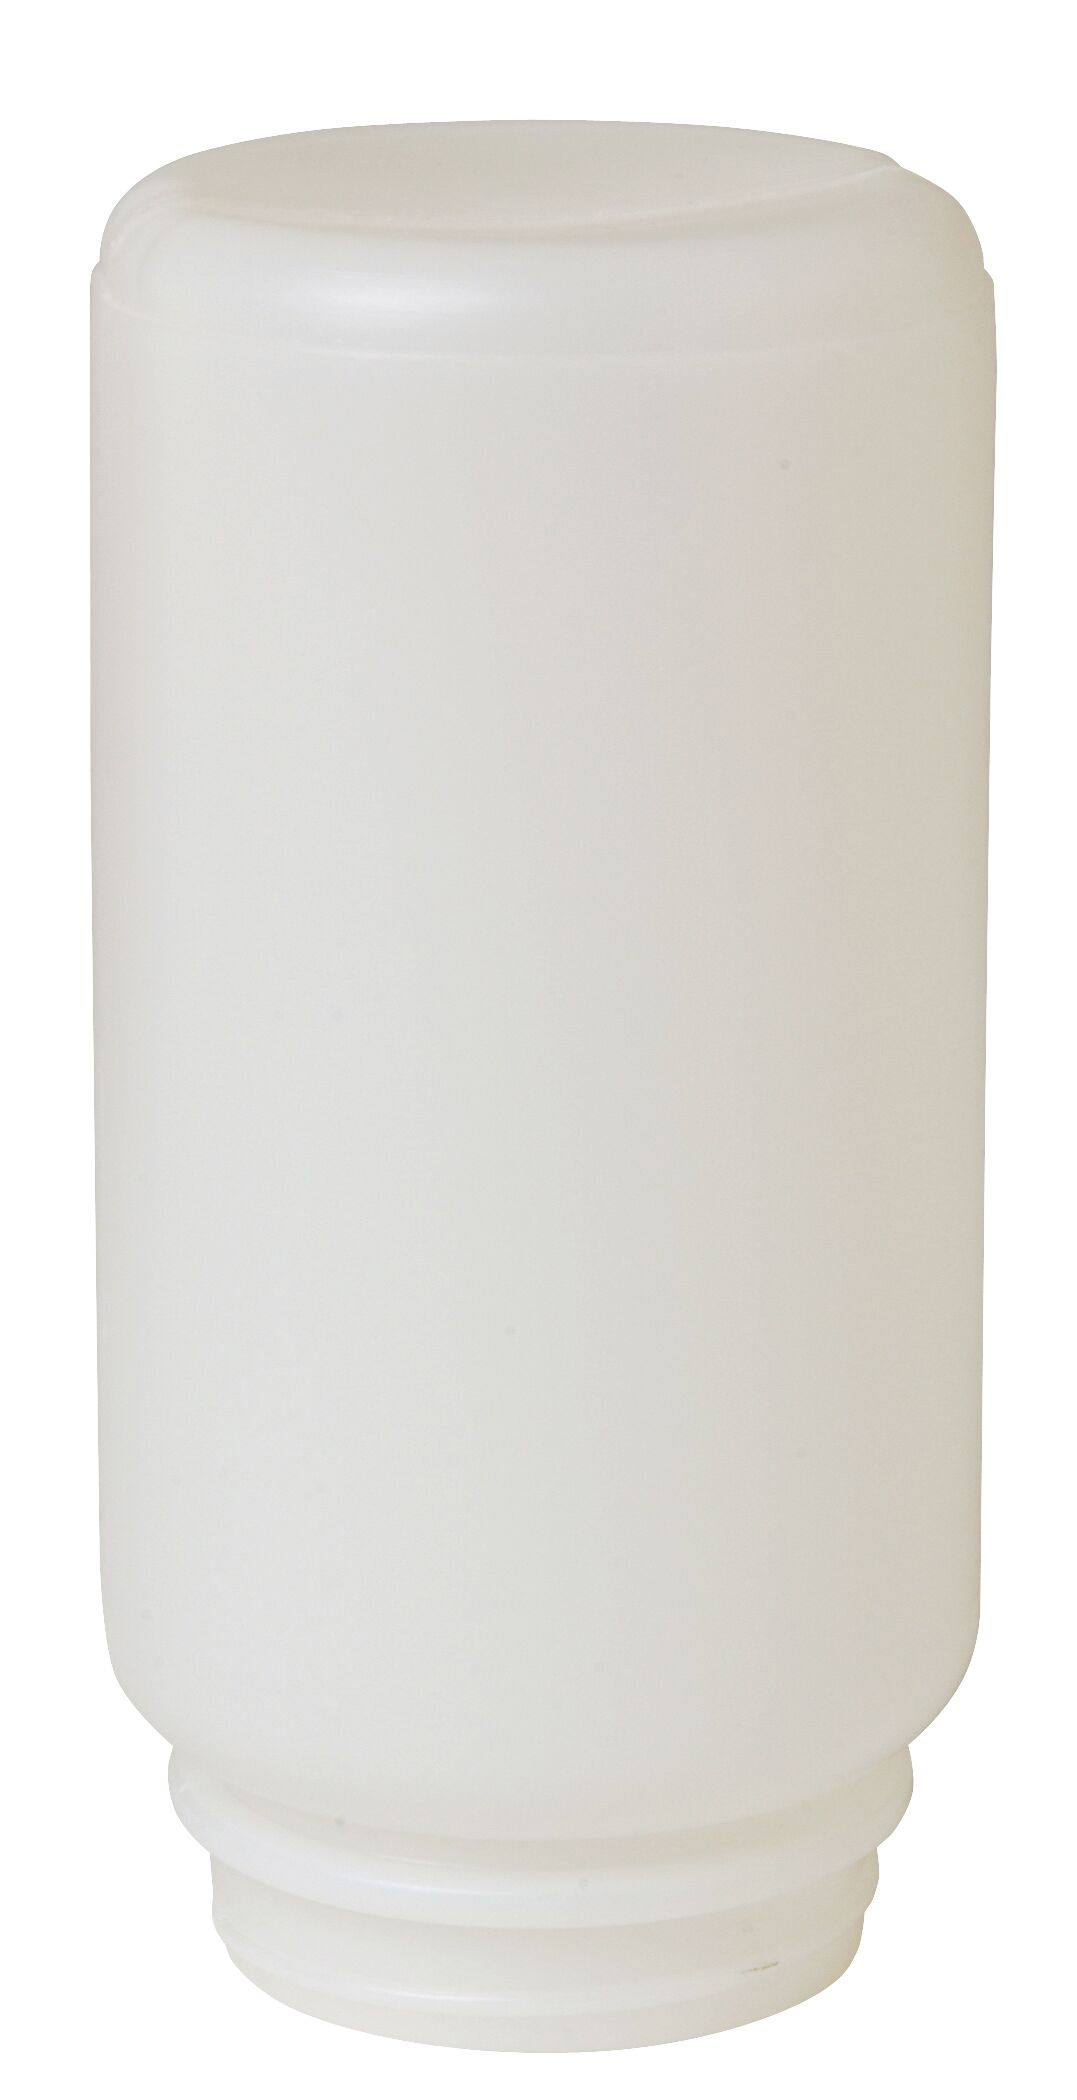 Screw On Plastic Jar Poultry Feeder in White - 1 Quart